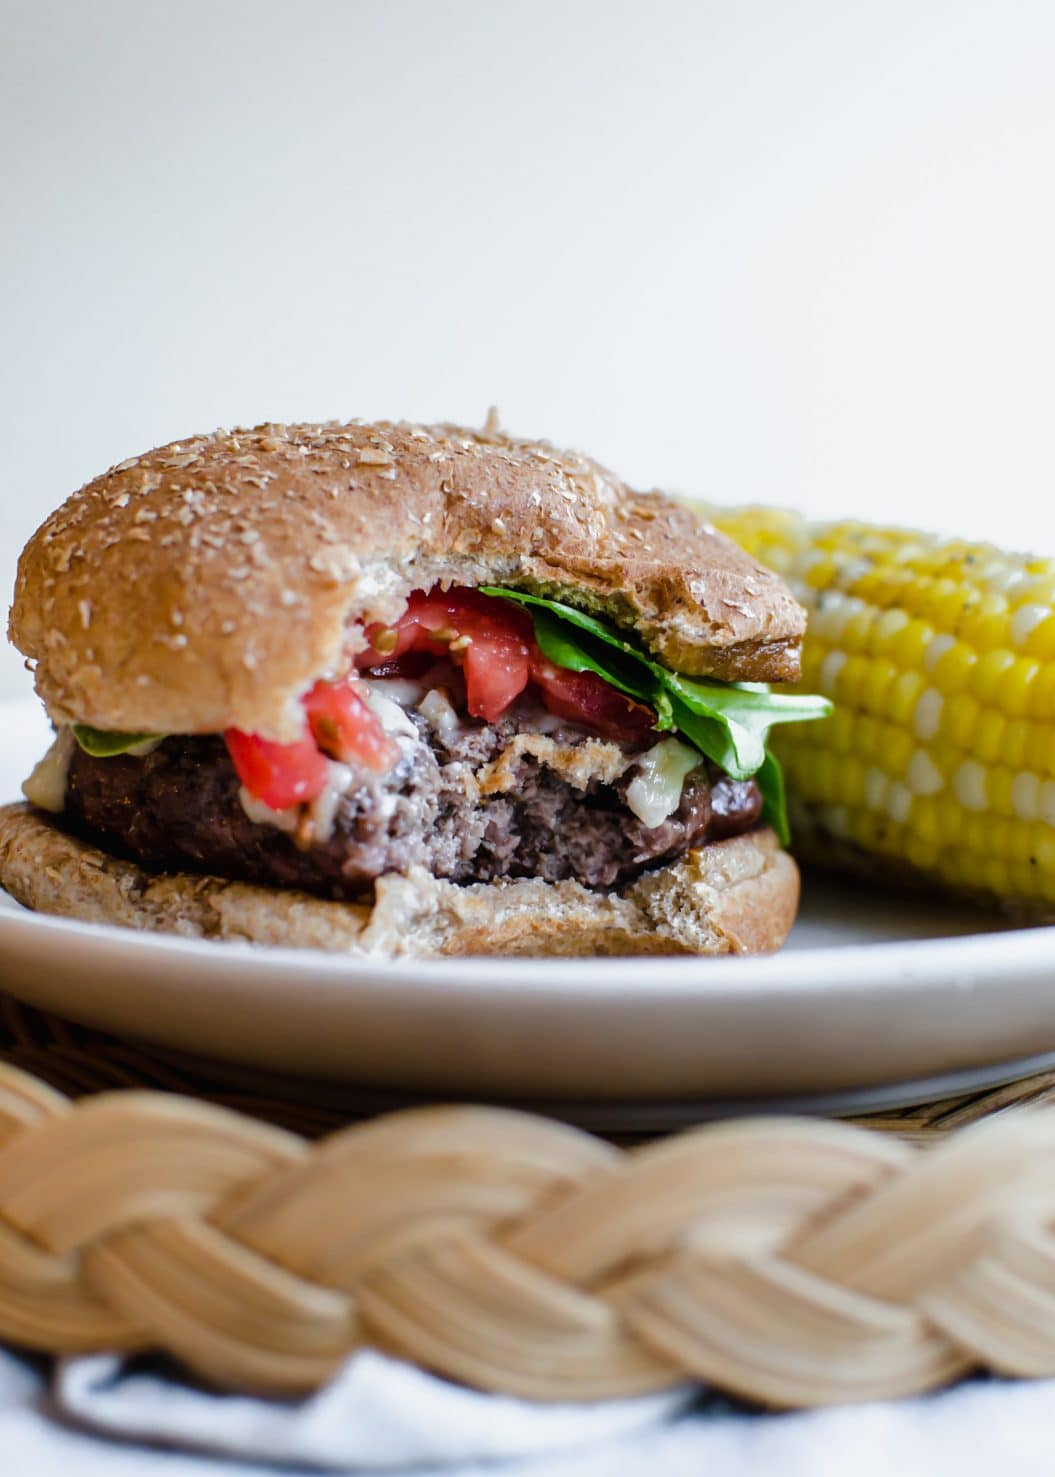 The Secret Ingredient For The Best Homemade Hamburger Recipe